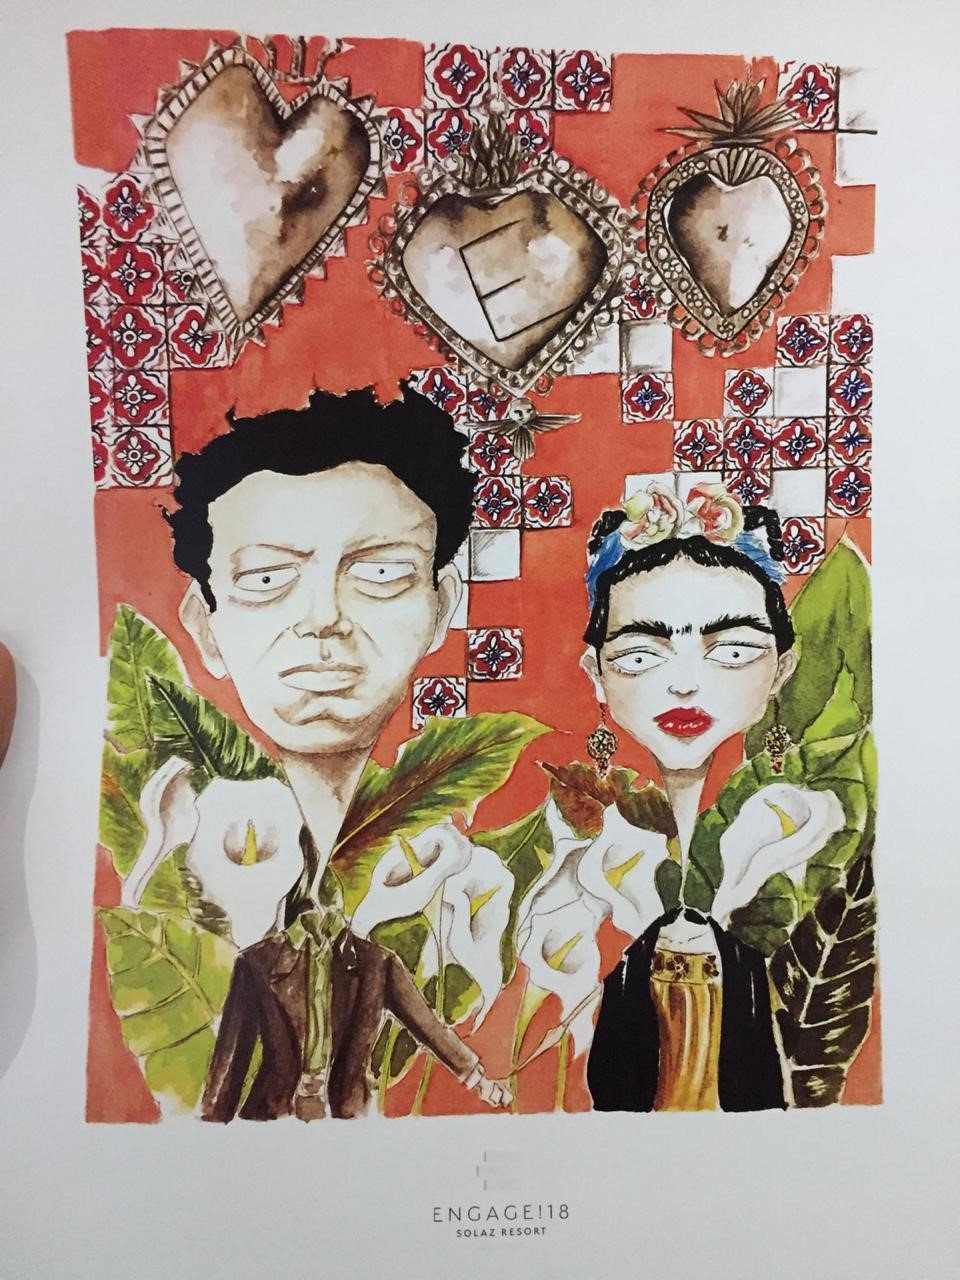 frida kahlo inspired art by negrito romero mexican illustrator event favors